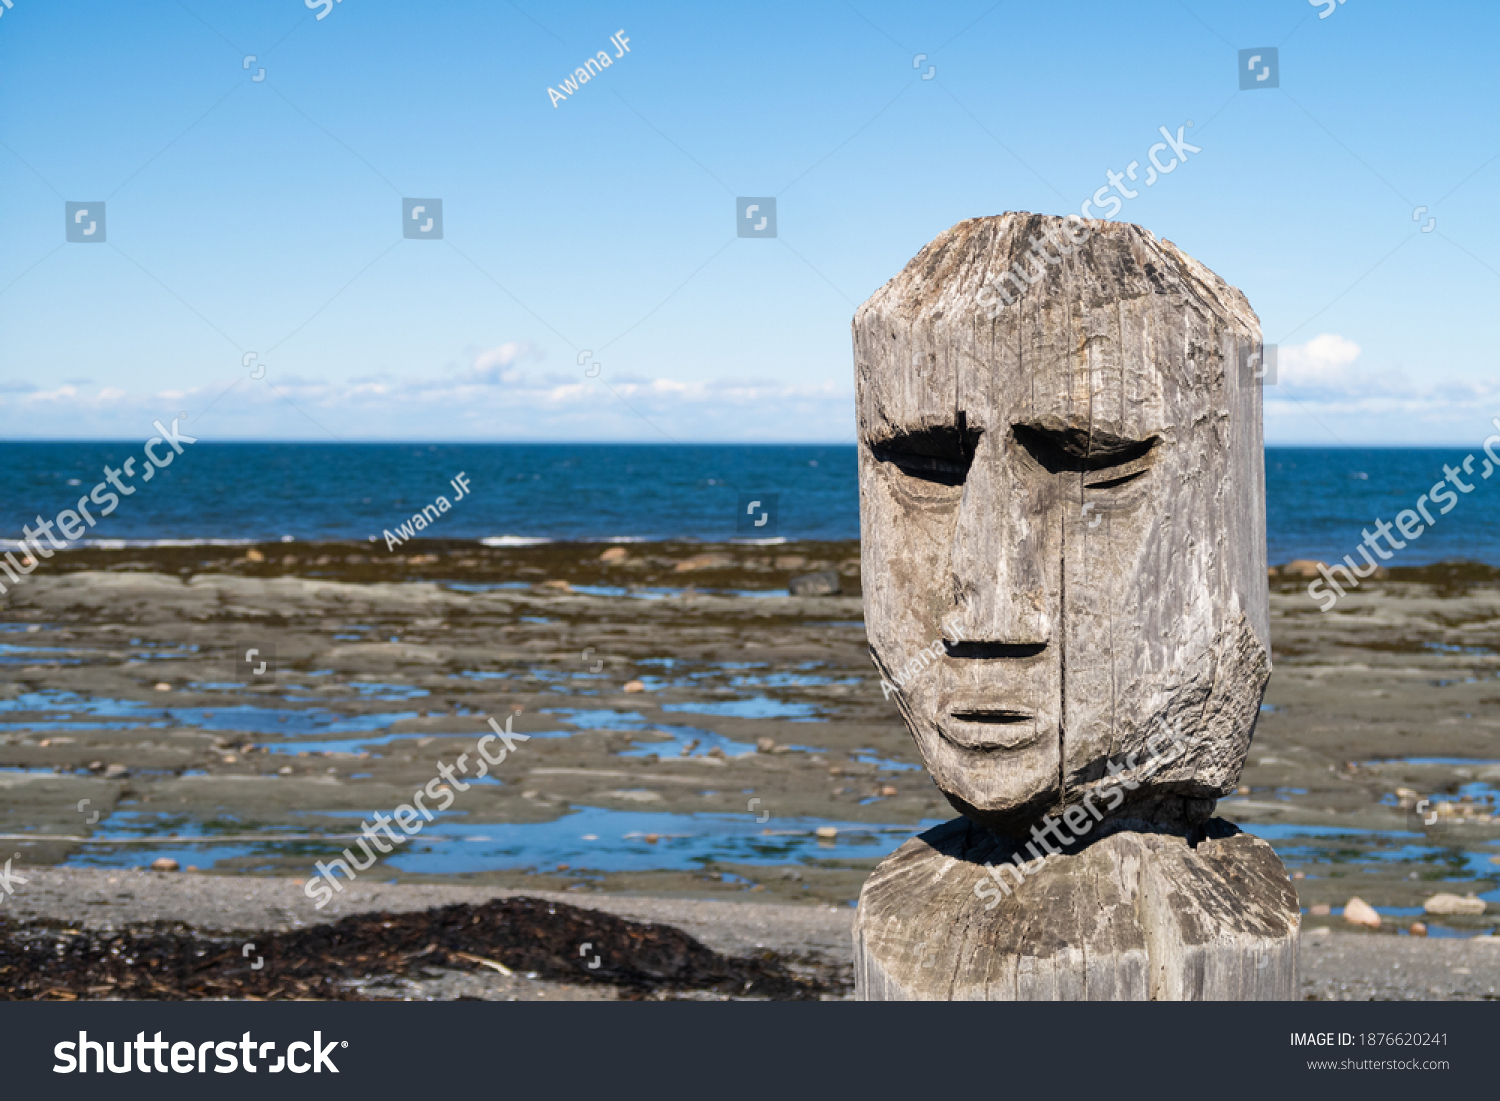 Sainte-Flavie, Canada - september 2020 : Isolated view of a concrete statue at the Marcel Gagnon art centre